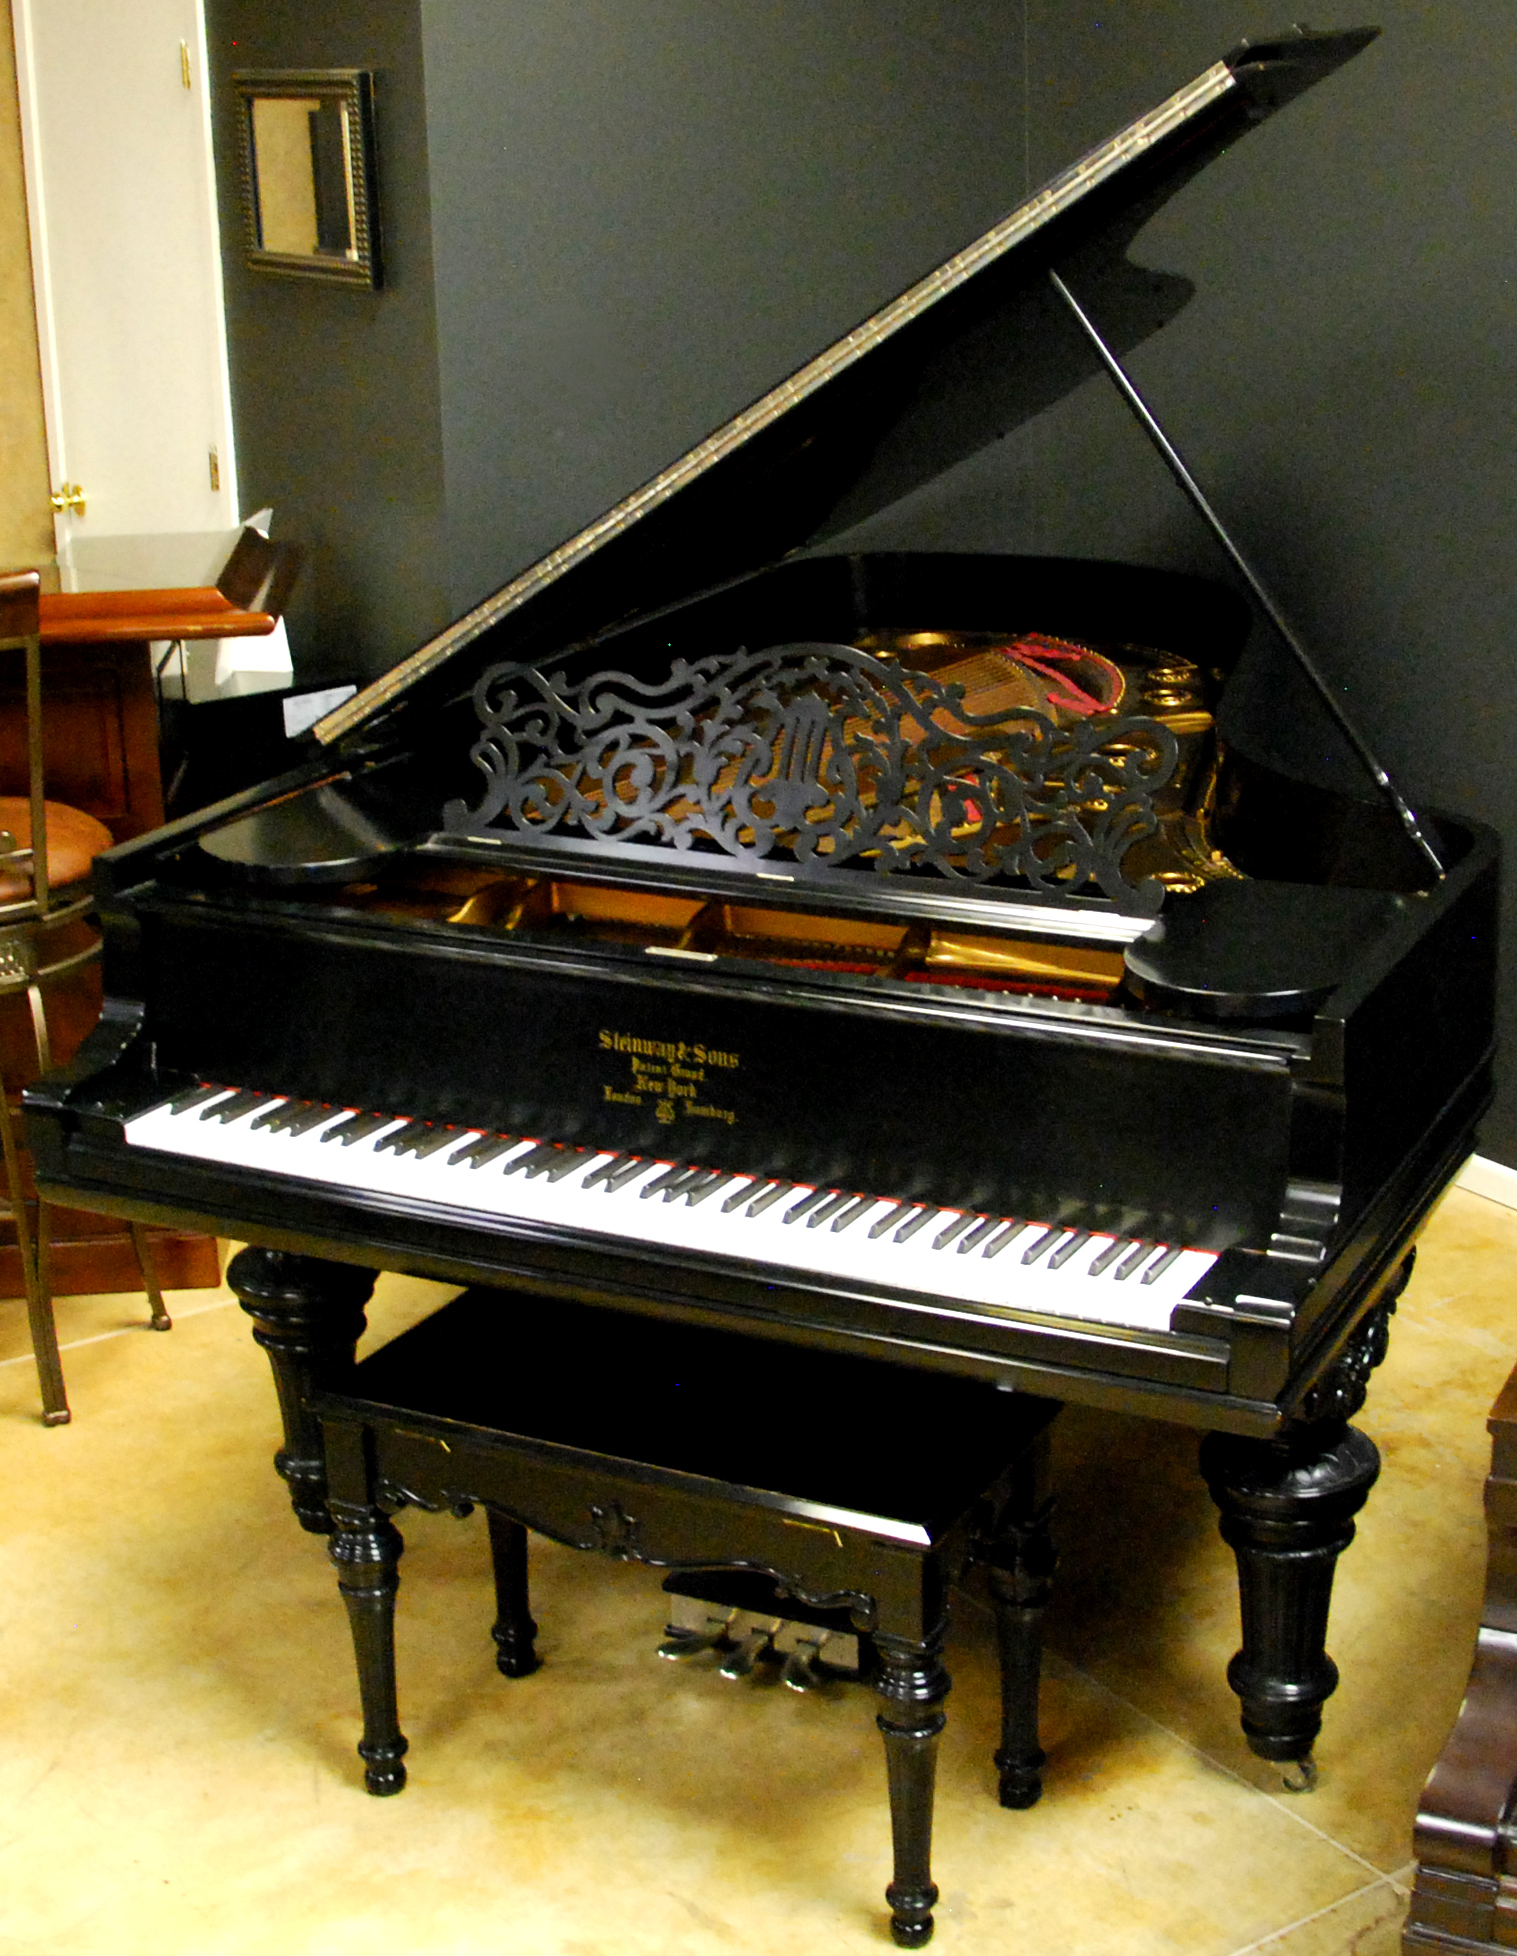 Used Steinway C Grand Piano from Chicago Pianos . com